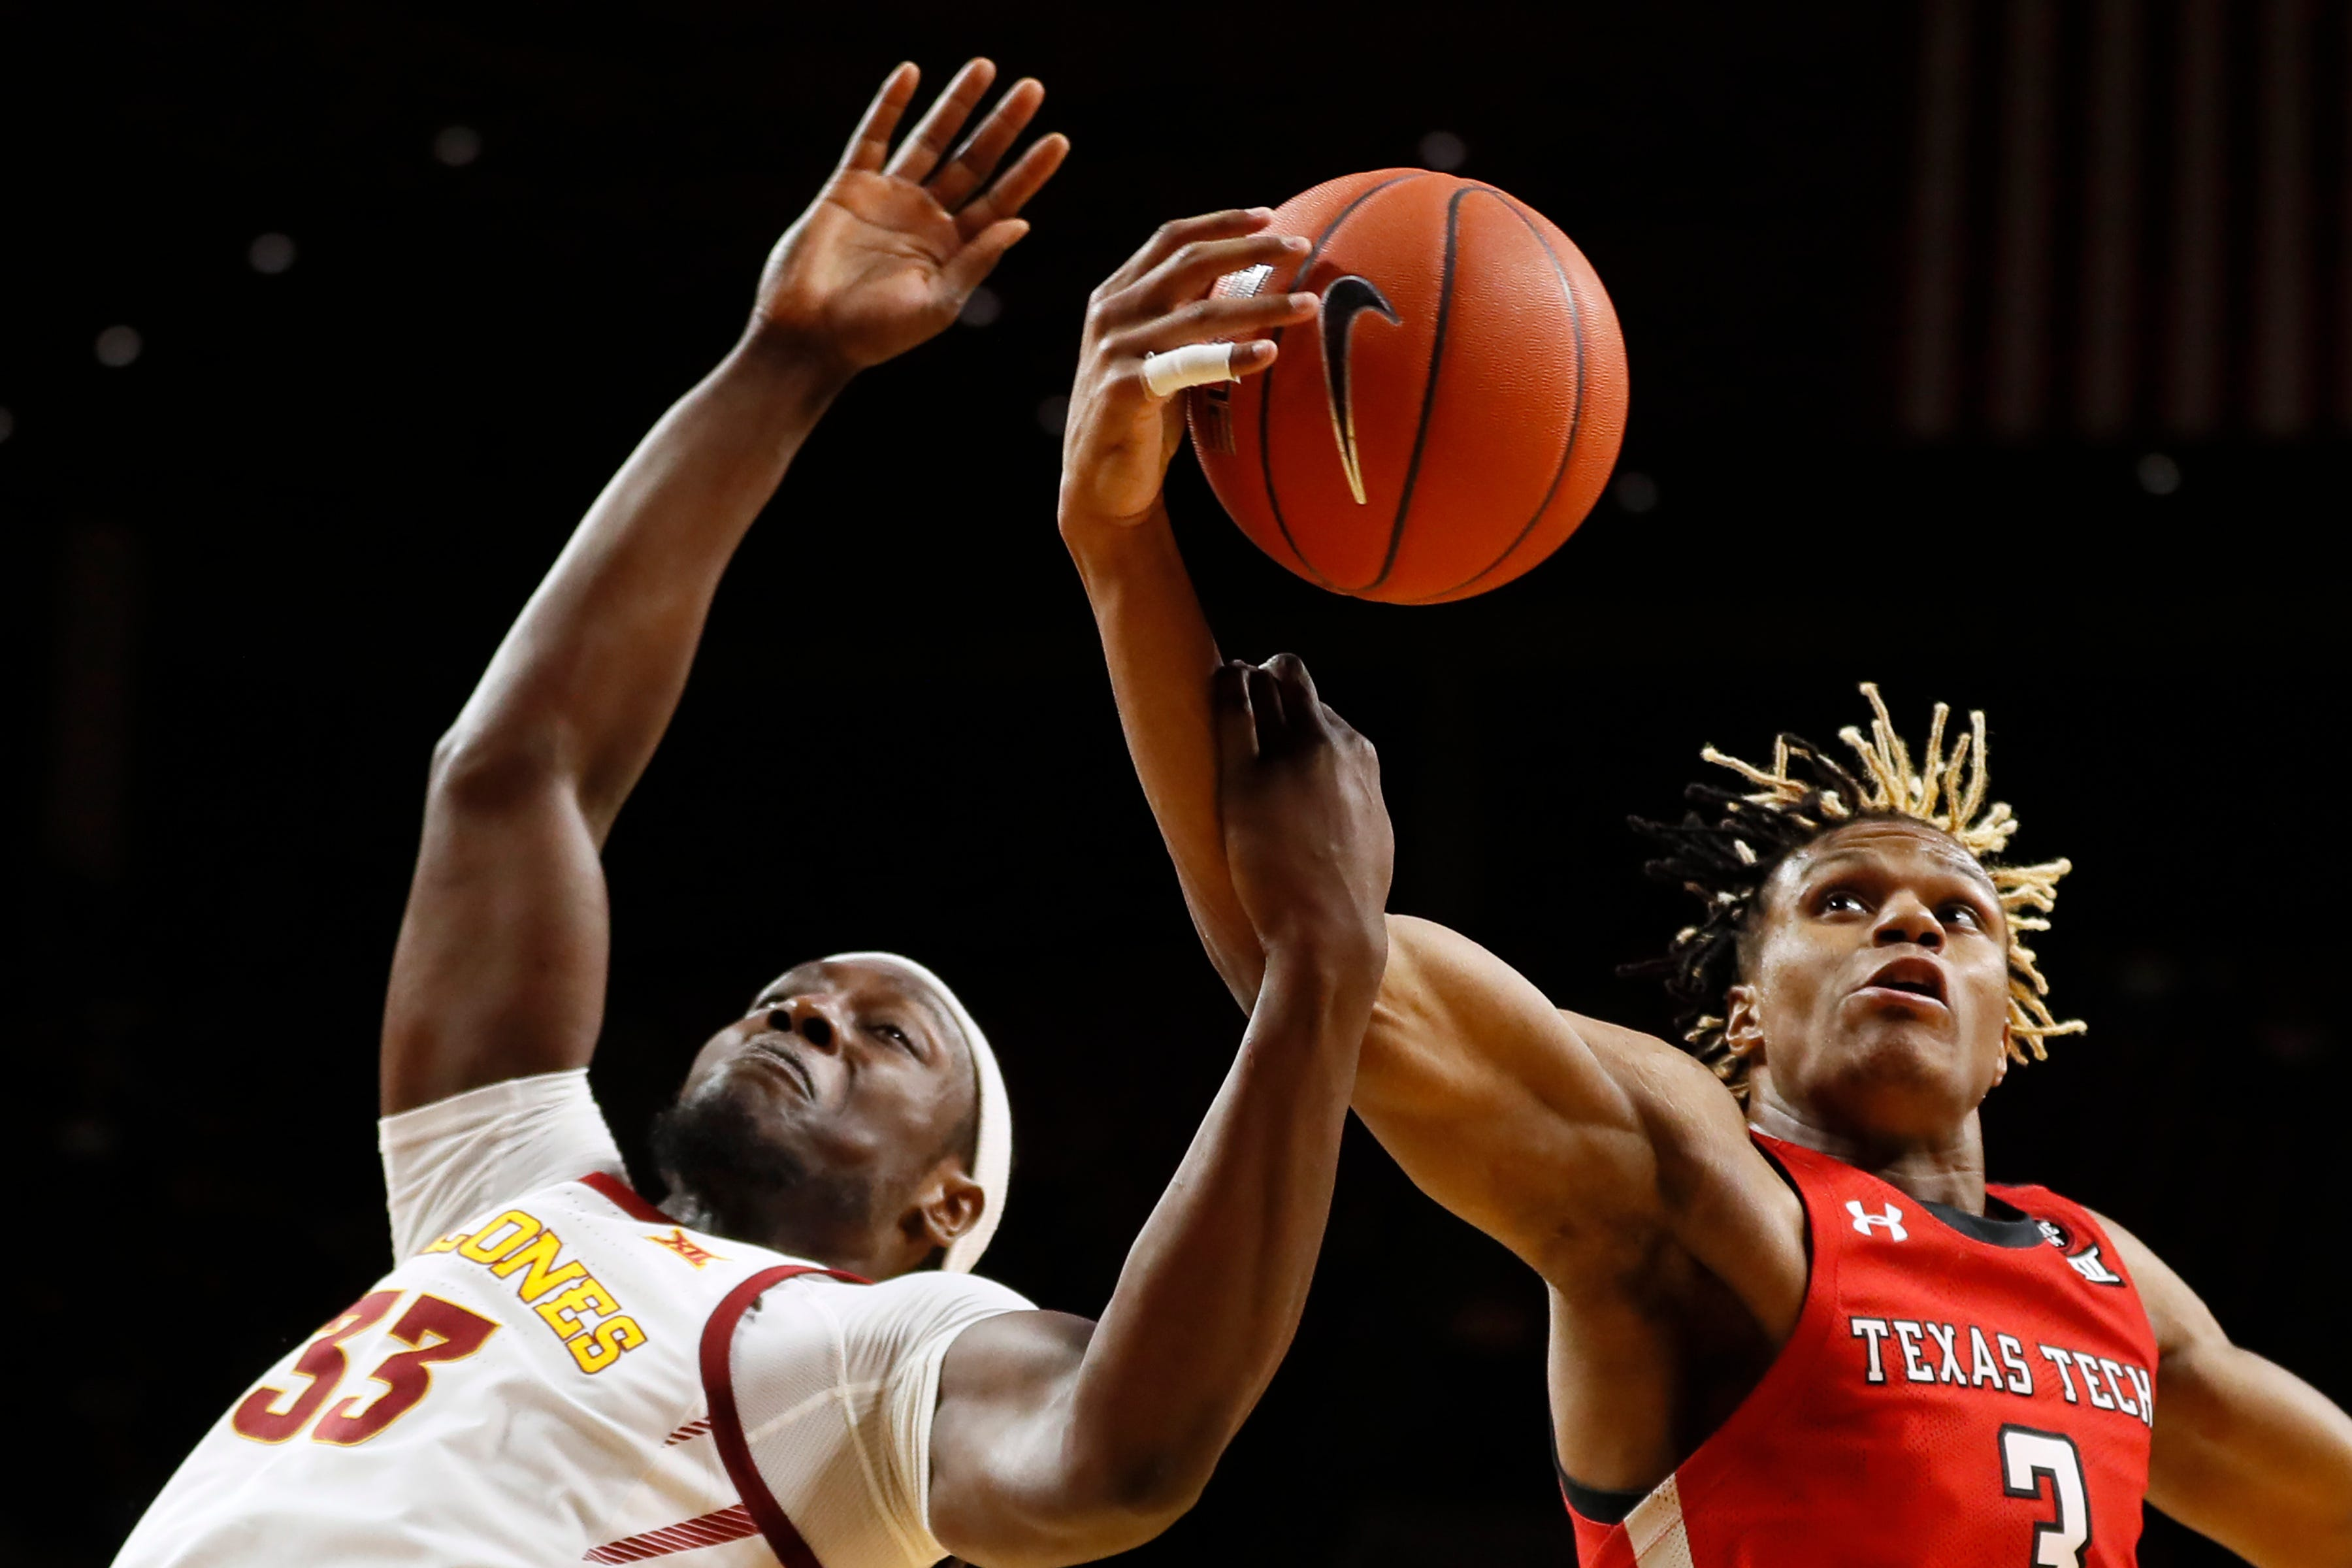 Iowa State Basketball Another Bad Day For Isu In Loss To Texas Tech